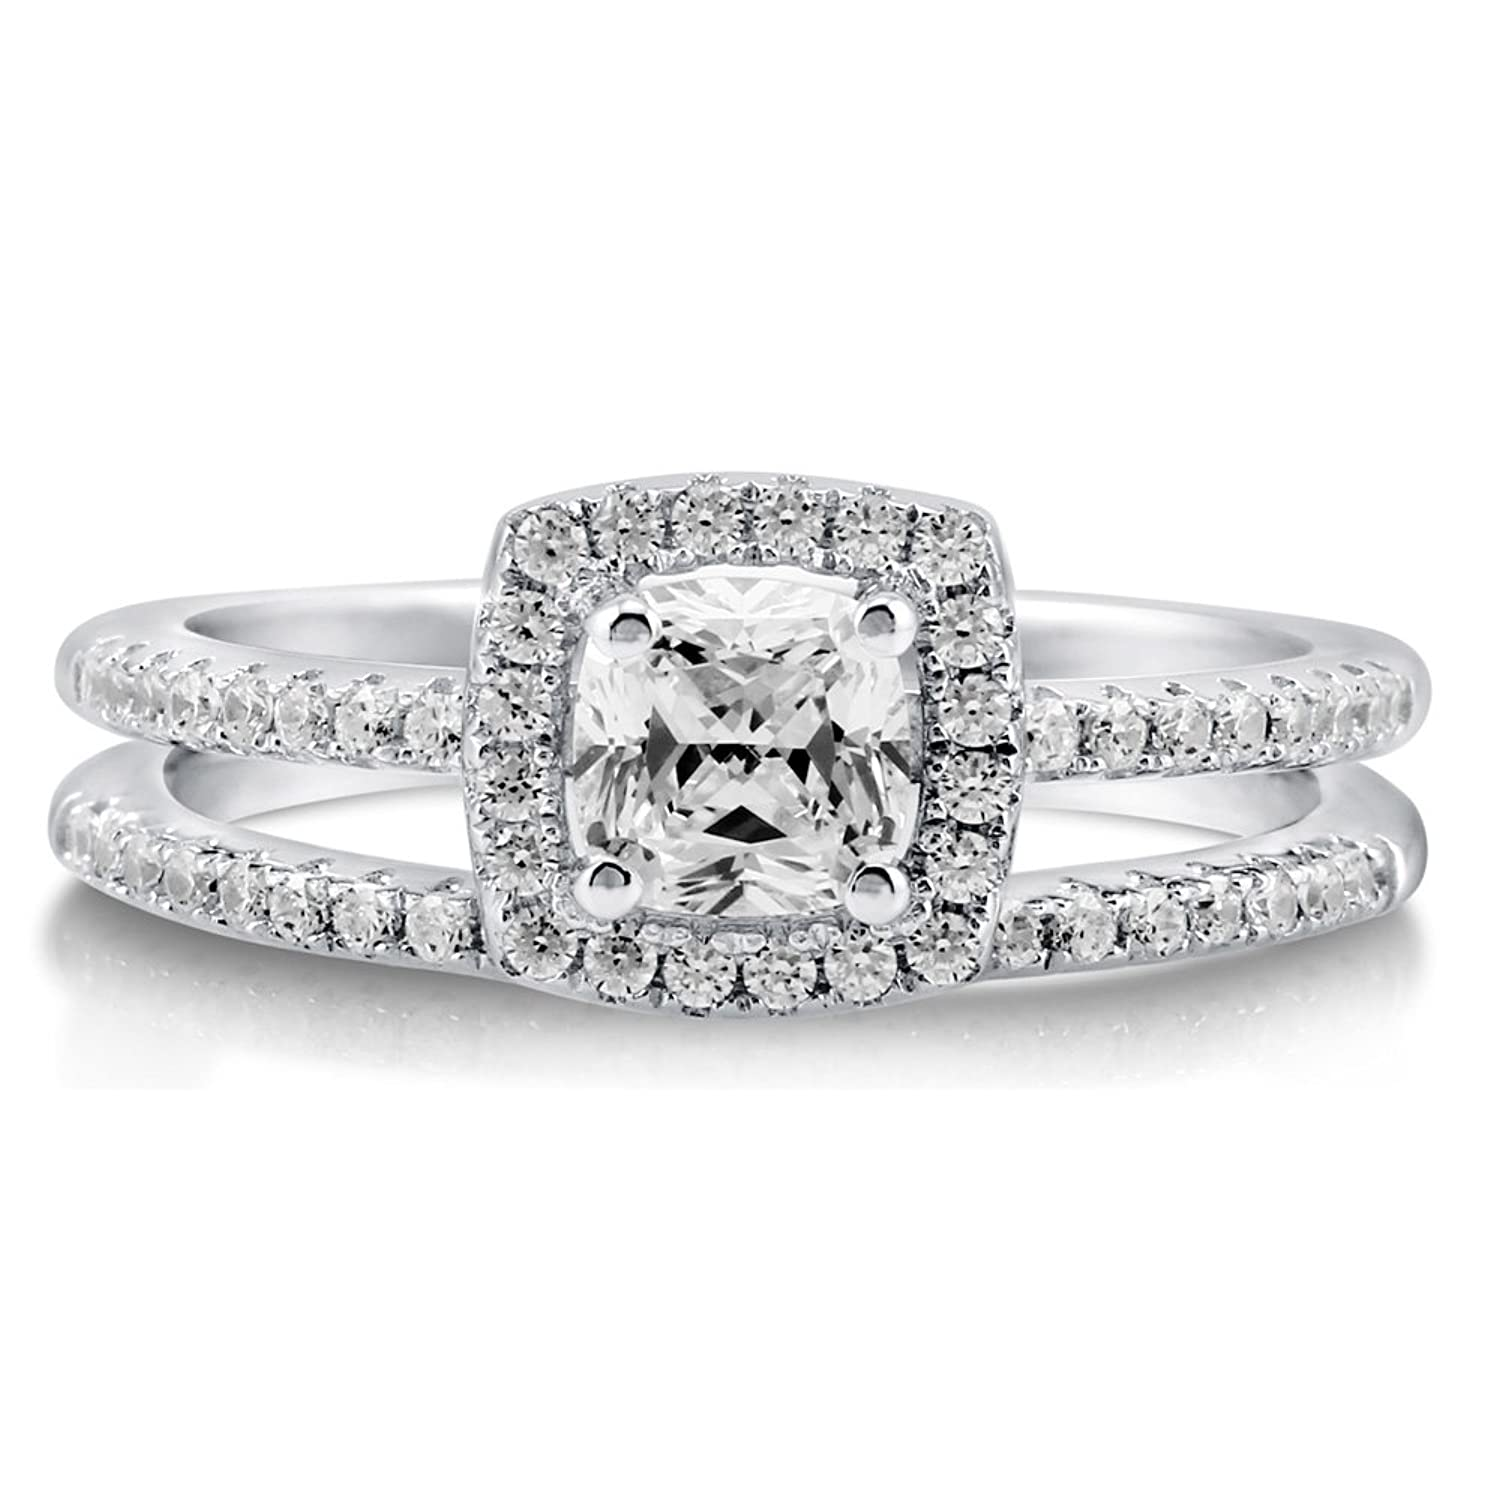 Amazon.com: BERRICLE Rhodium Plated Sterling Silver Cushion Cut Cubic  Zirconia CZ Halo Engagement Ring Set: Jewelry